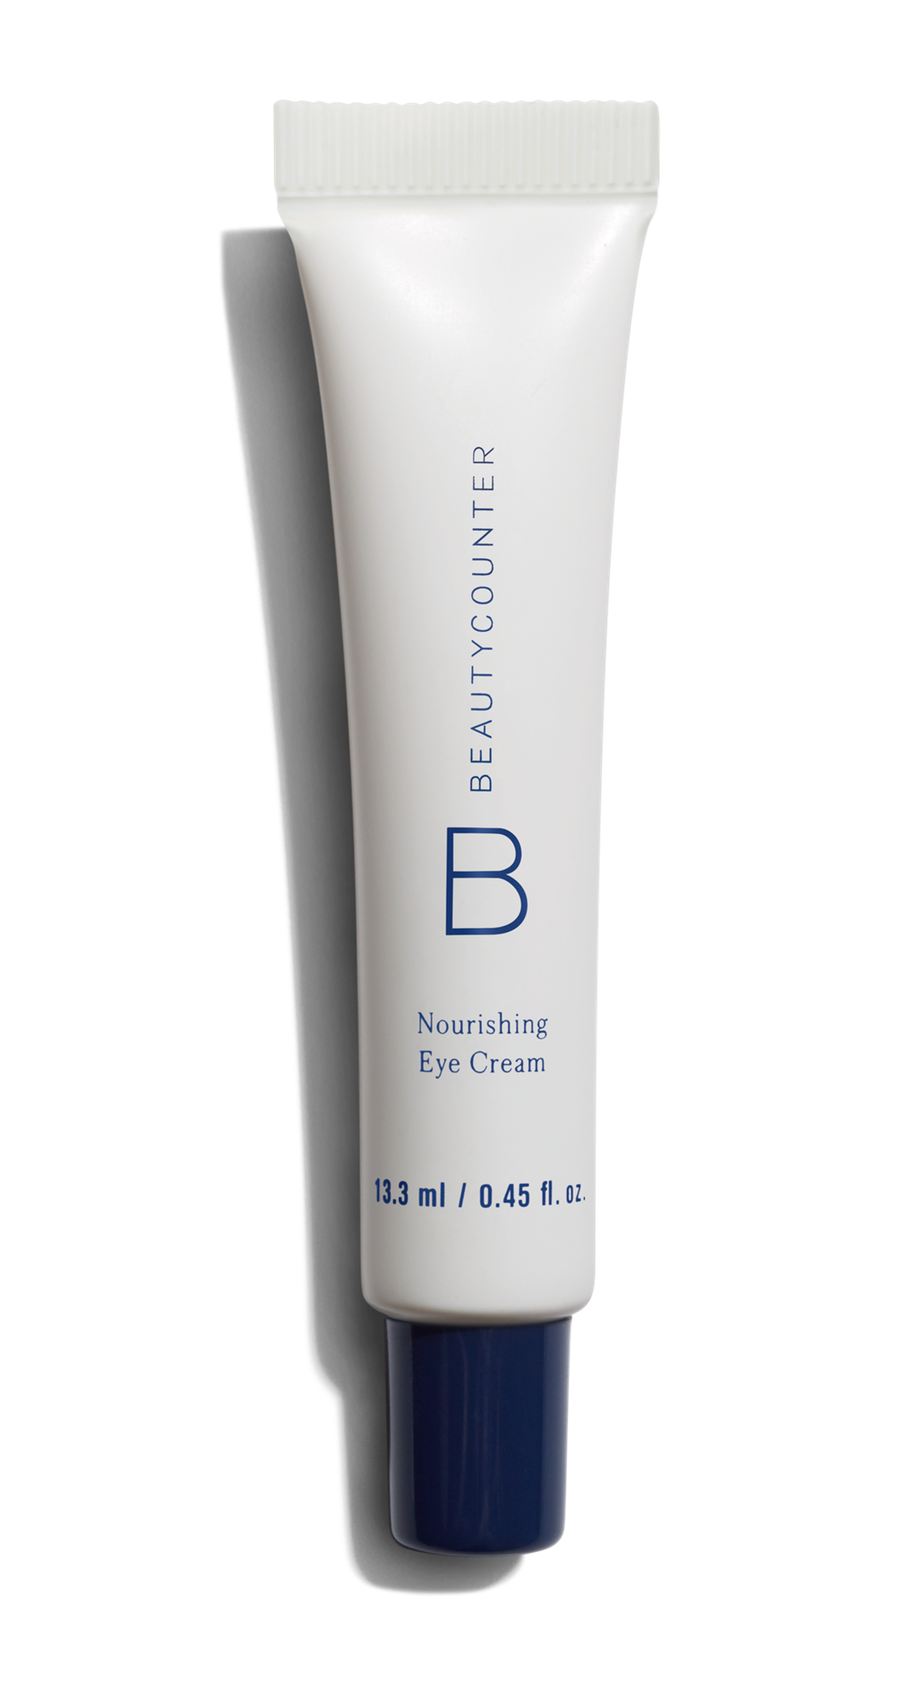 #3 - Beautycounter Nourishing Eye Cream